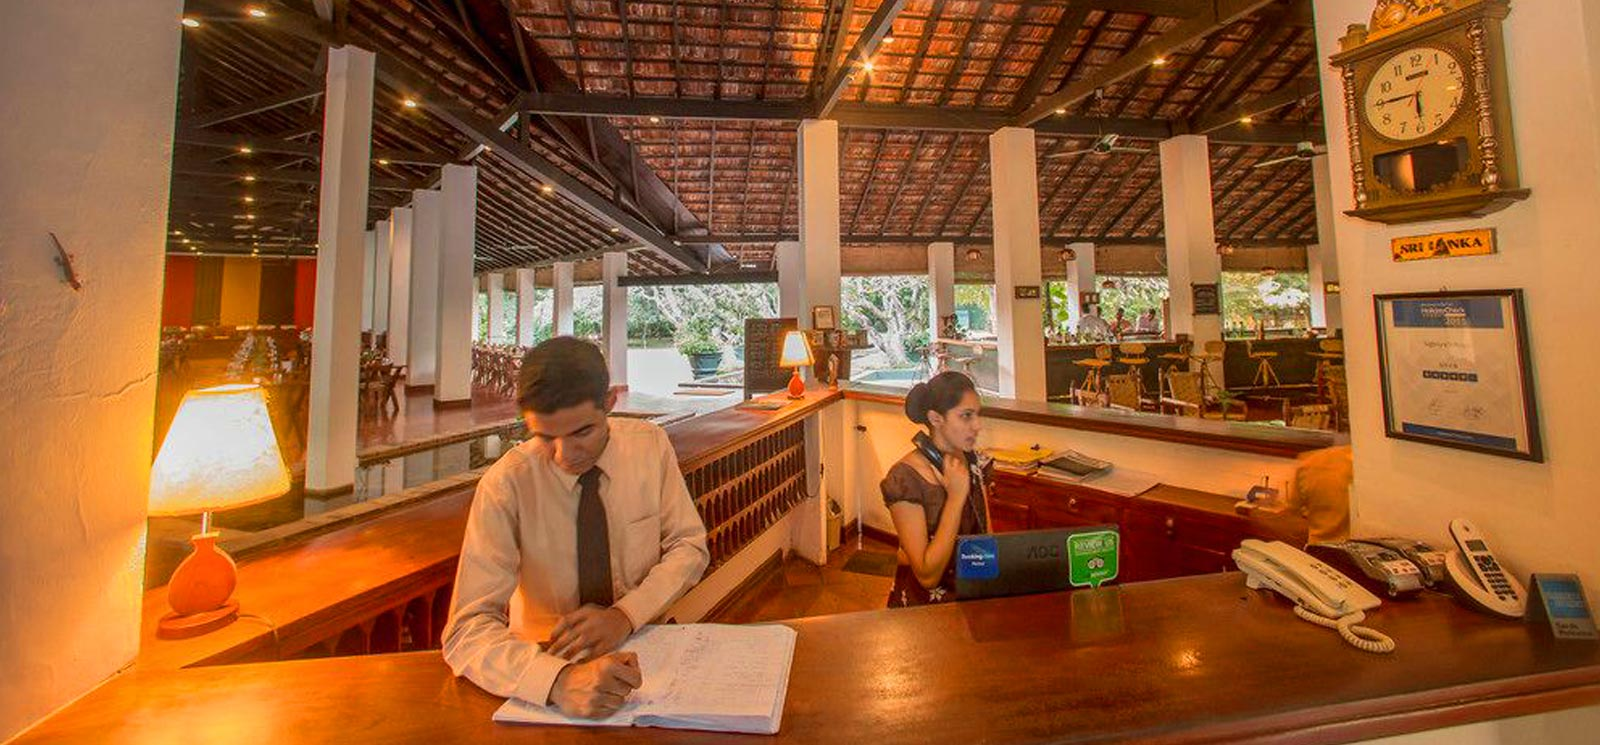 Hospitality Careers at the Colombo Fort Hotel